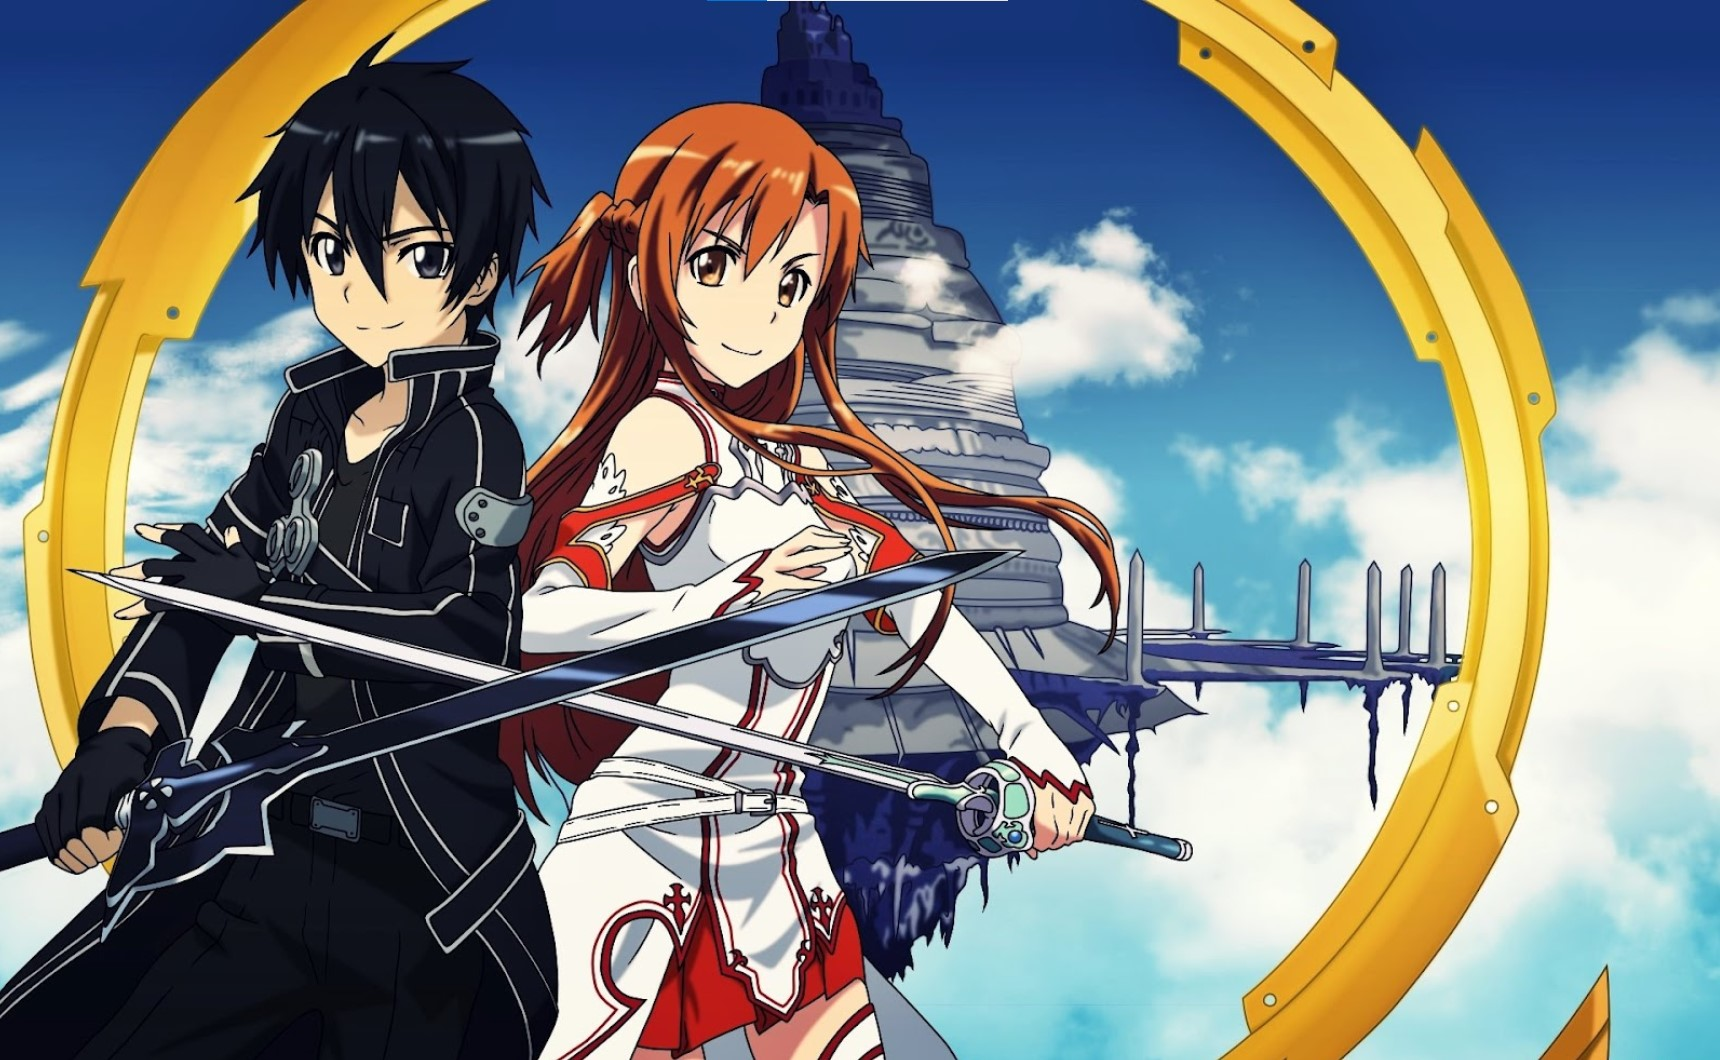 Sword Art Online (Season 1)- sword art online watch order guide